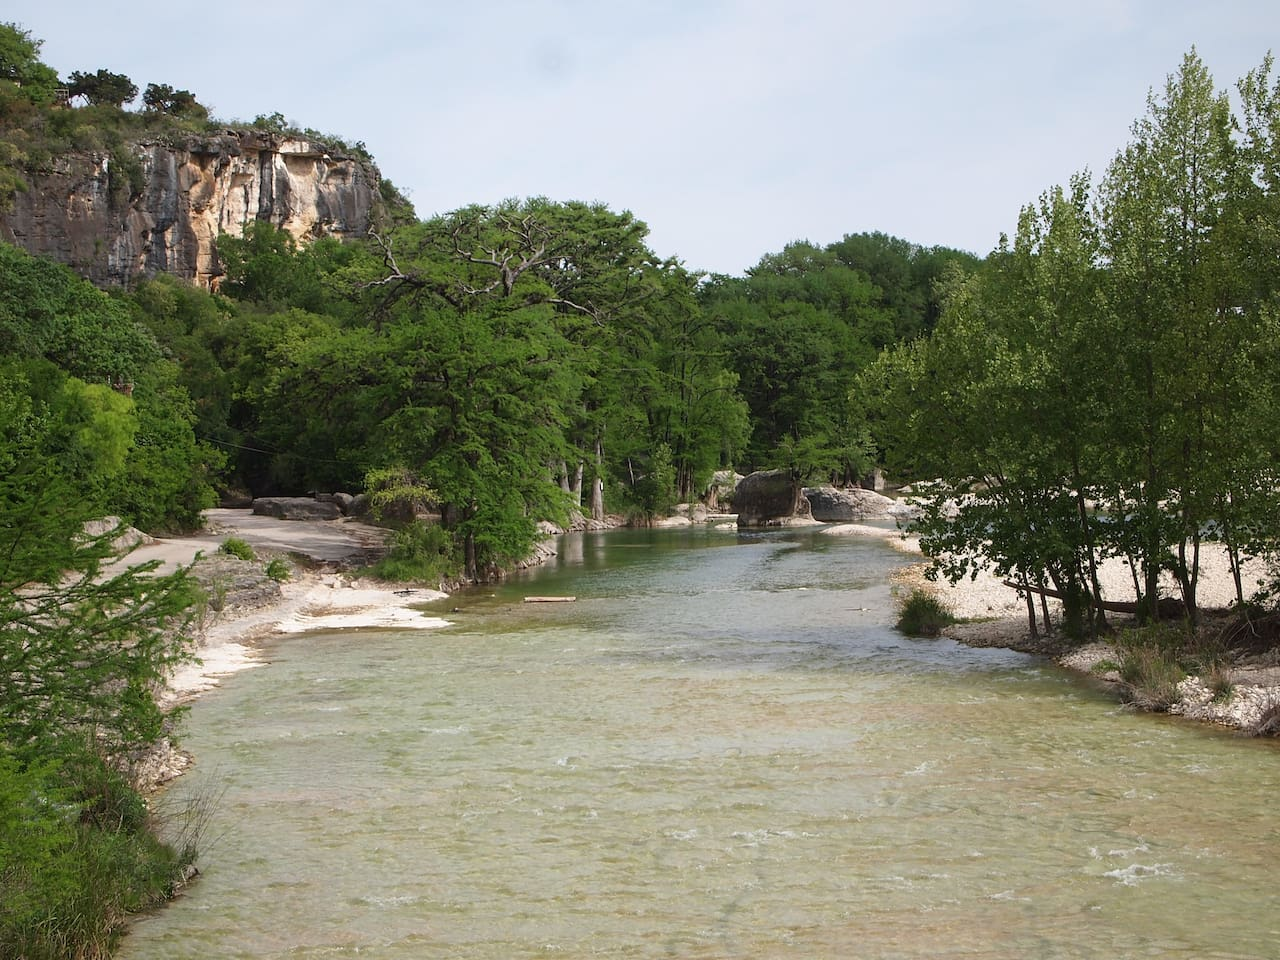 Access is on the East side of the Frio River at the 1st Crossing on Hwy 127 which is a short walk from the cabin on the highway.  Most people drive.